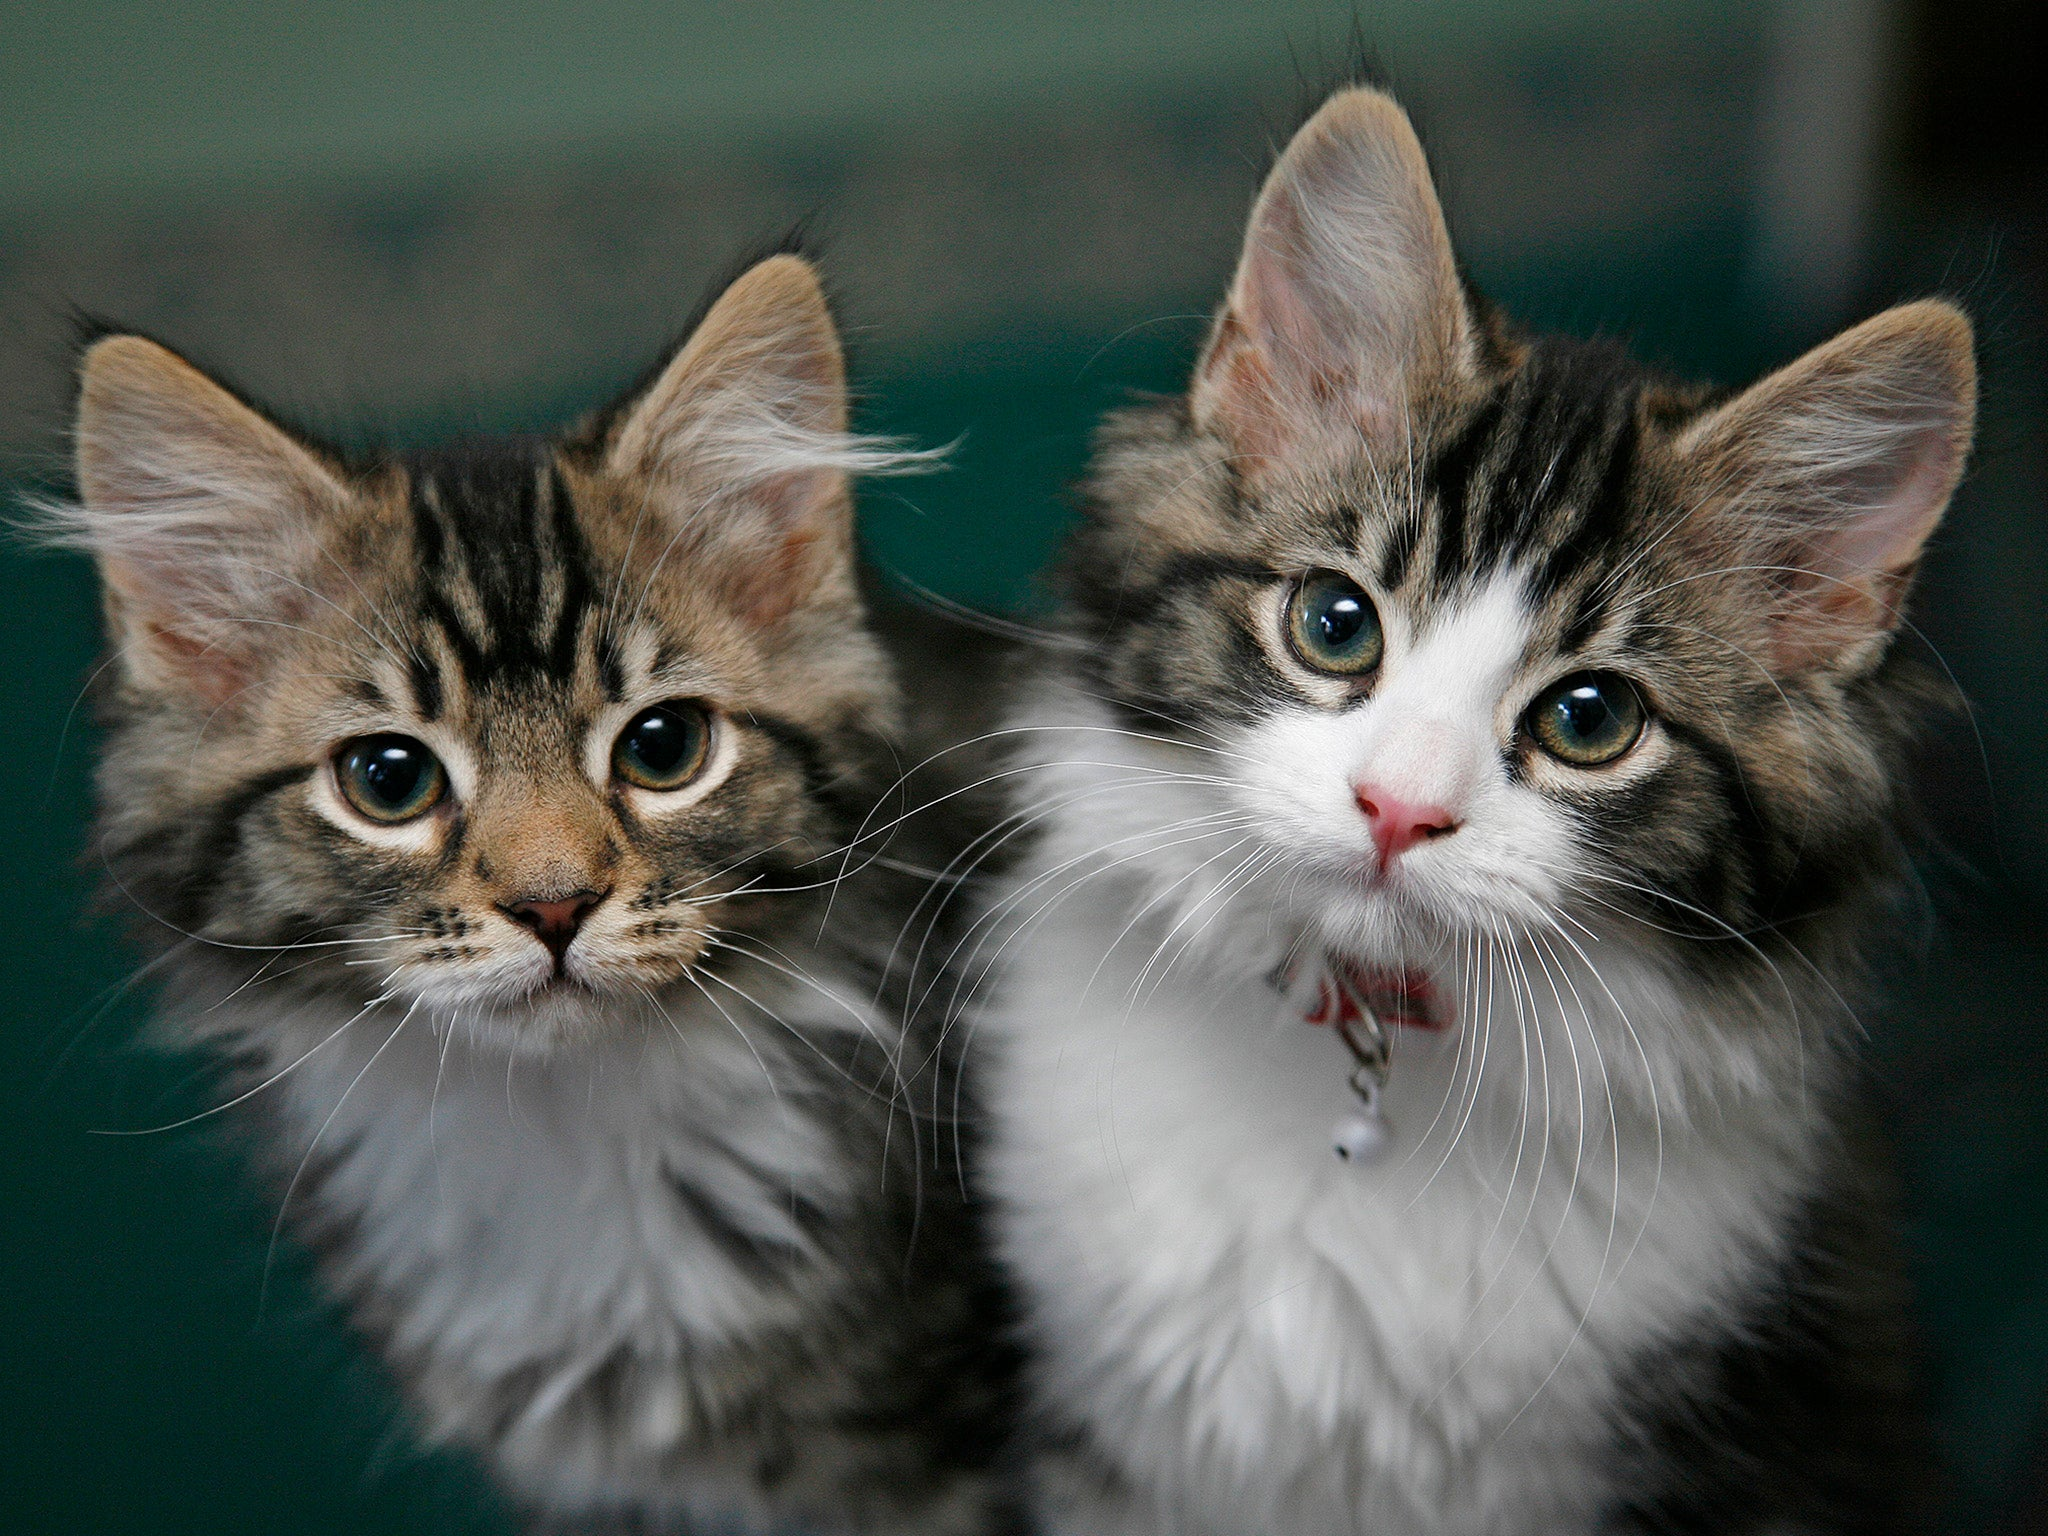 kittens latest news breaking stories and comment the independent